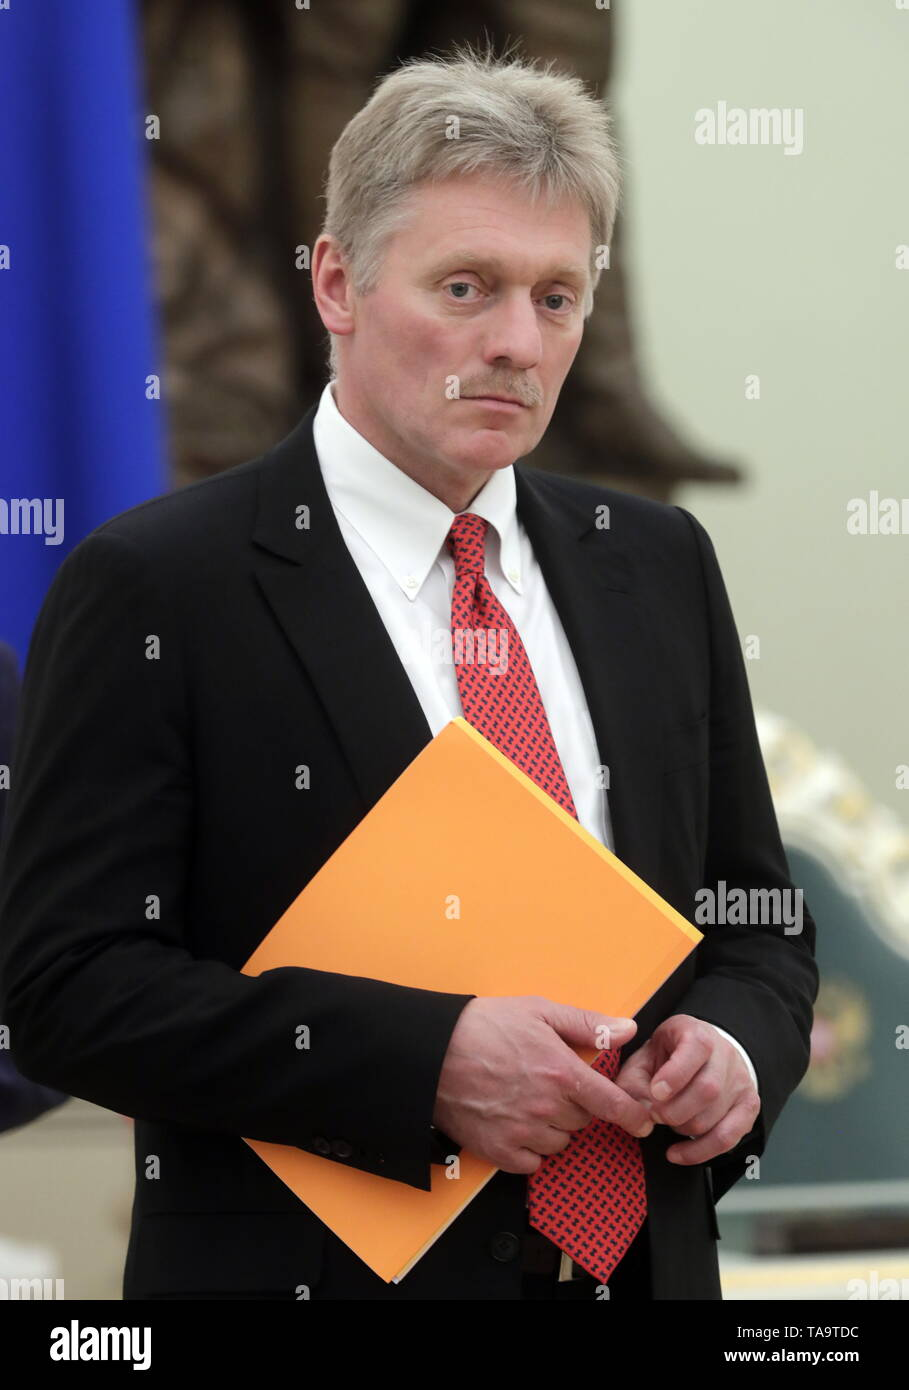 Moscow, Russia. 23rd May, 2019. MOSCOW, RUSSIA - MAY 23, 2019: Russian Presidential Spokesman Dmitry Peskov during a meeting of Russia's President Vladimir Putin with former heads of Russian regions, at the Moscow Kremlin. Mikhail Metzel/TASS Credit: ITAR-TASS News Agency/Alamy Live News - Stock Image